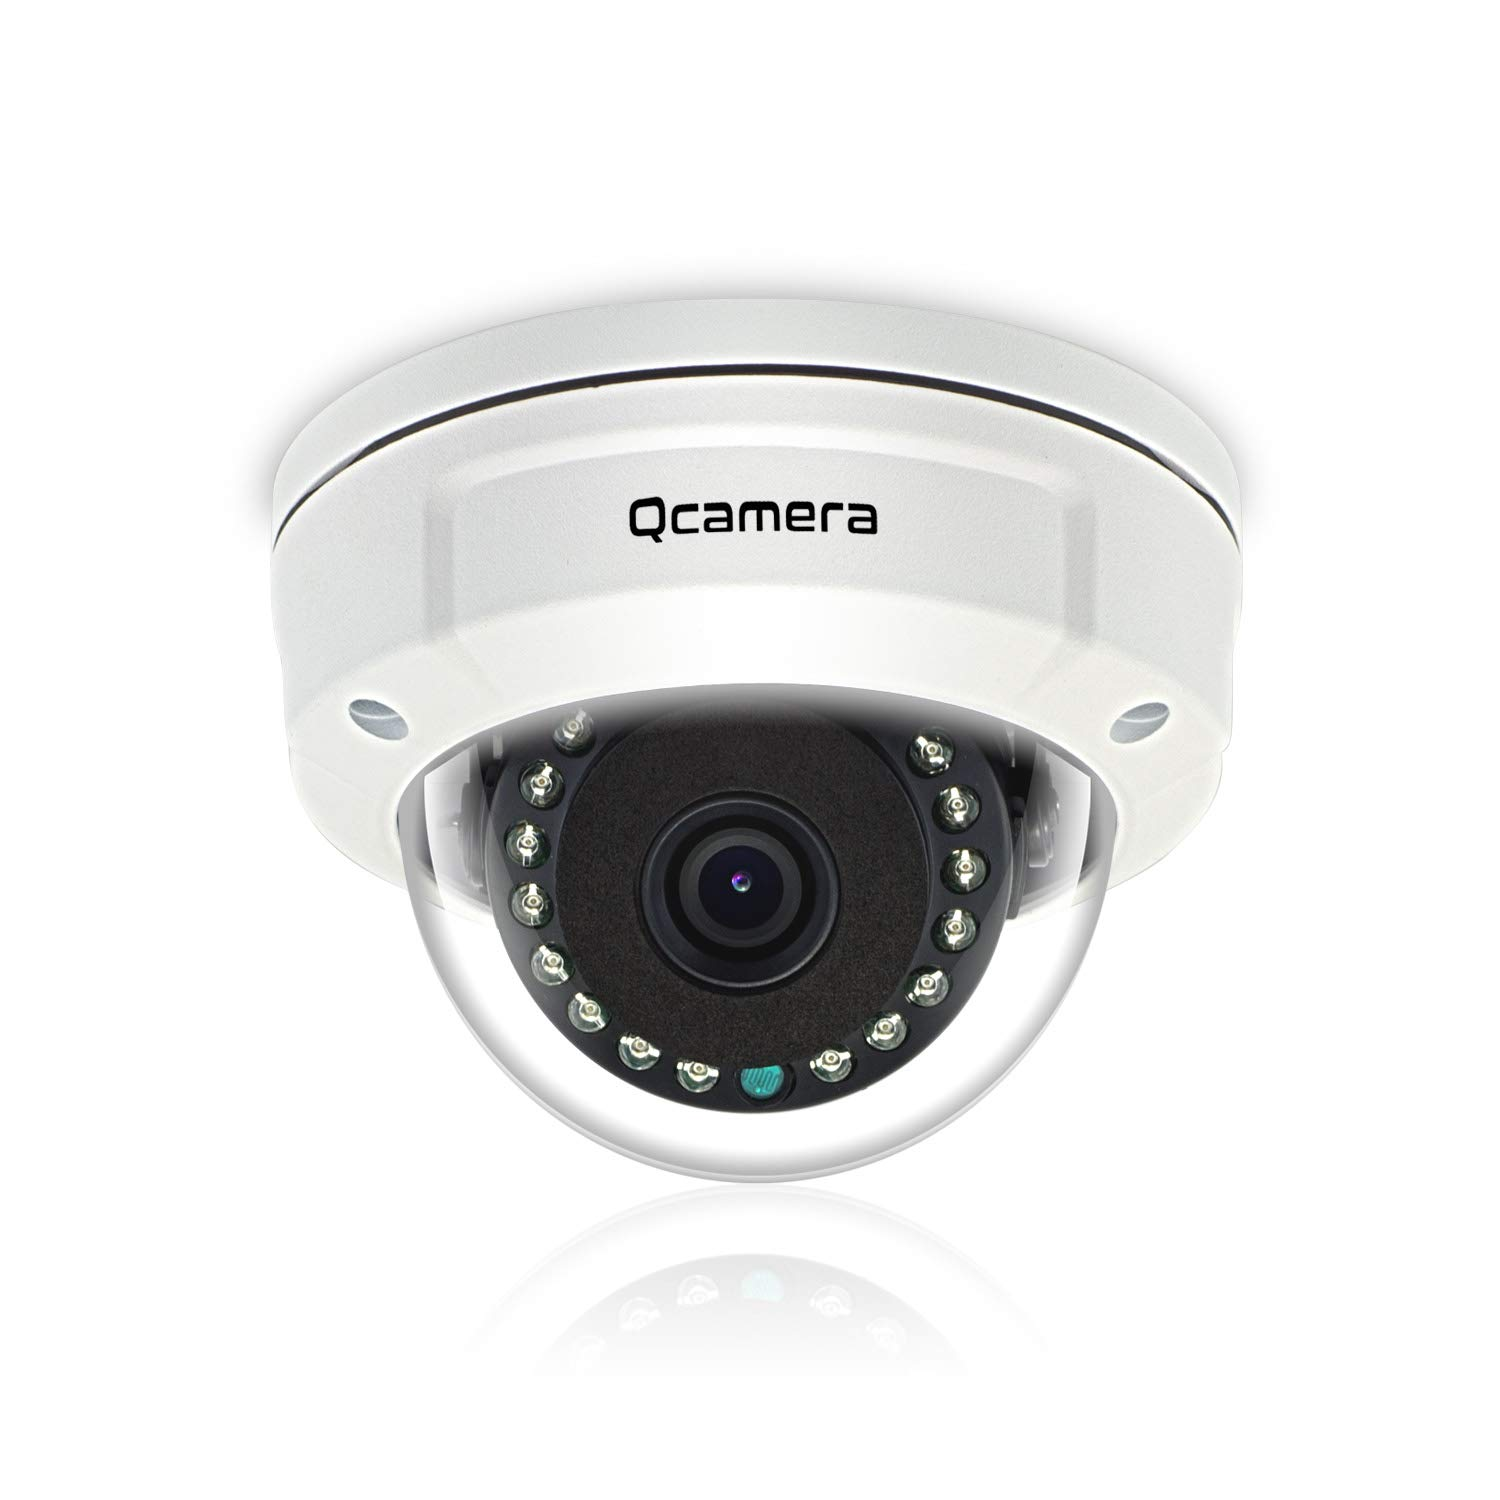 Q-camera Dome Security Camera 5MP 4 in 1 TVI CVI AHD CVBS 1 2.5 Sensor 3.6mm Lens Vandal-Proof Waterproof 45ft 15 LEDs IR-Cut Night Vision Home Surveillance System Camera for Outdoor Indoor